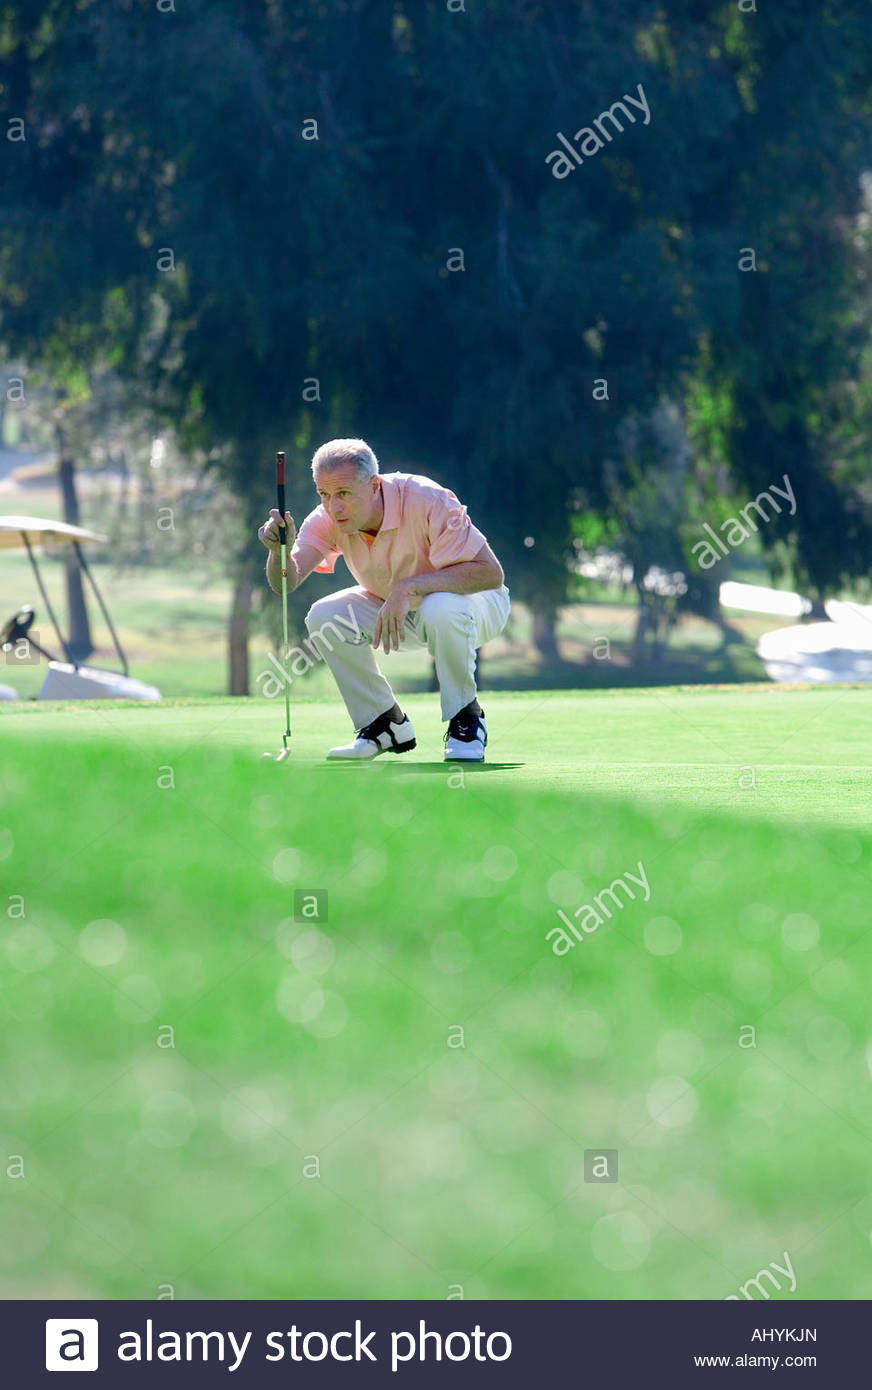 Mature man lining up putting shot on green in mid-distance, holding putter, crouching, focus on background - Stock Image